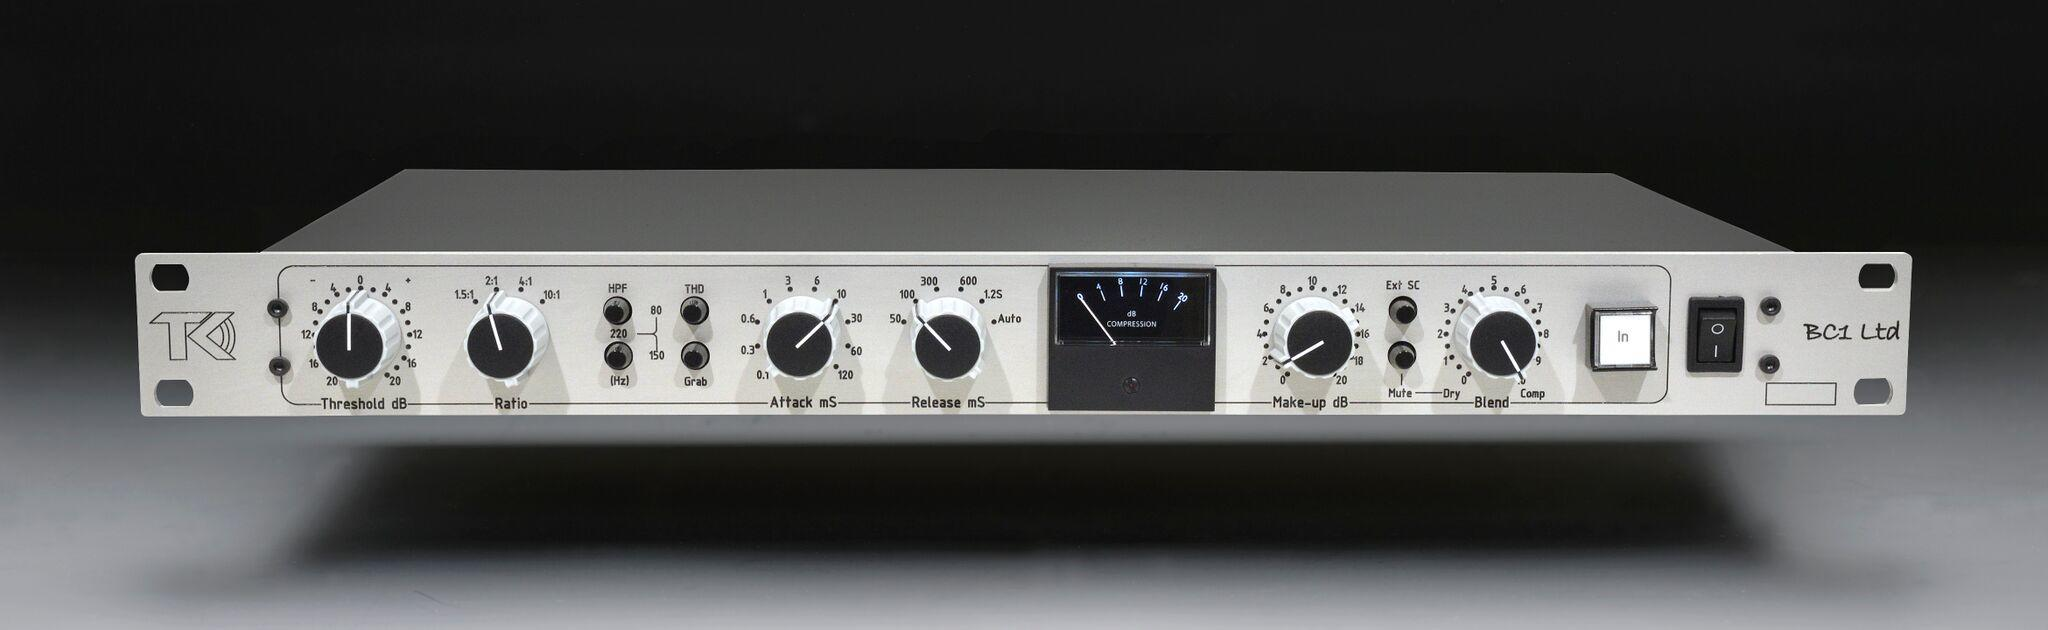 Tk Audio Introduces A New Version Of Bc1  Its Flagship Bus